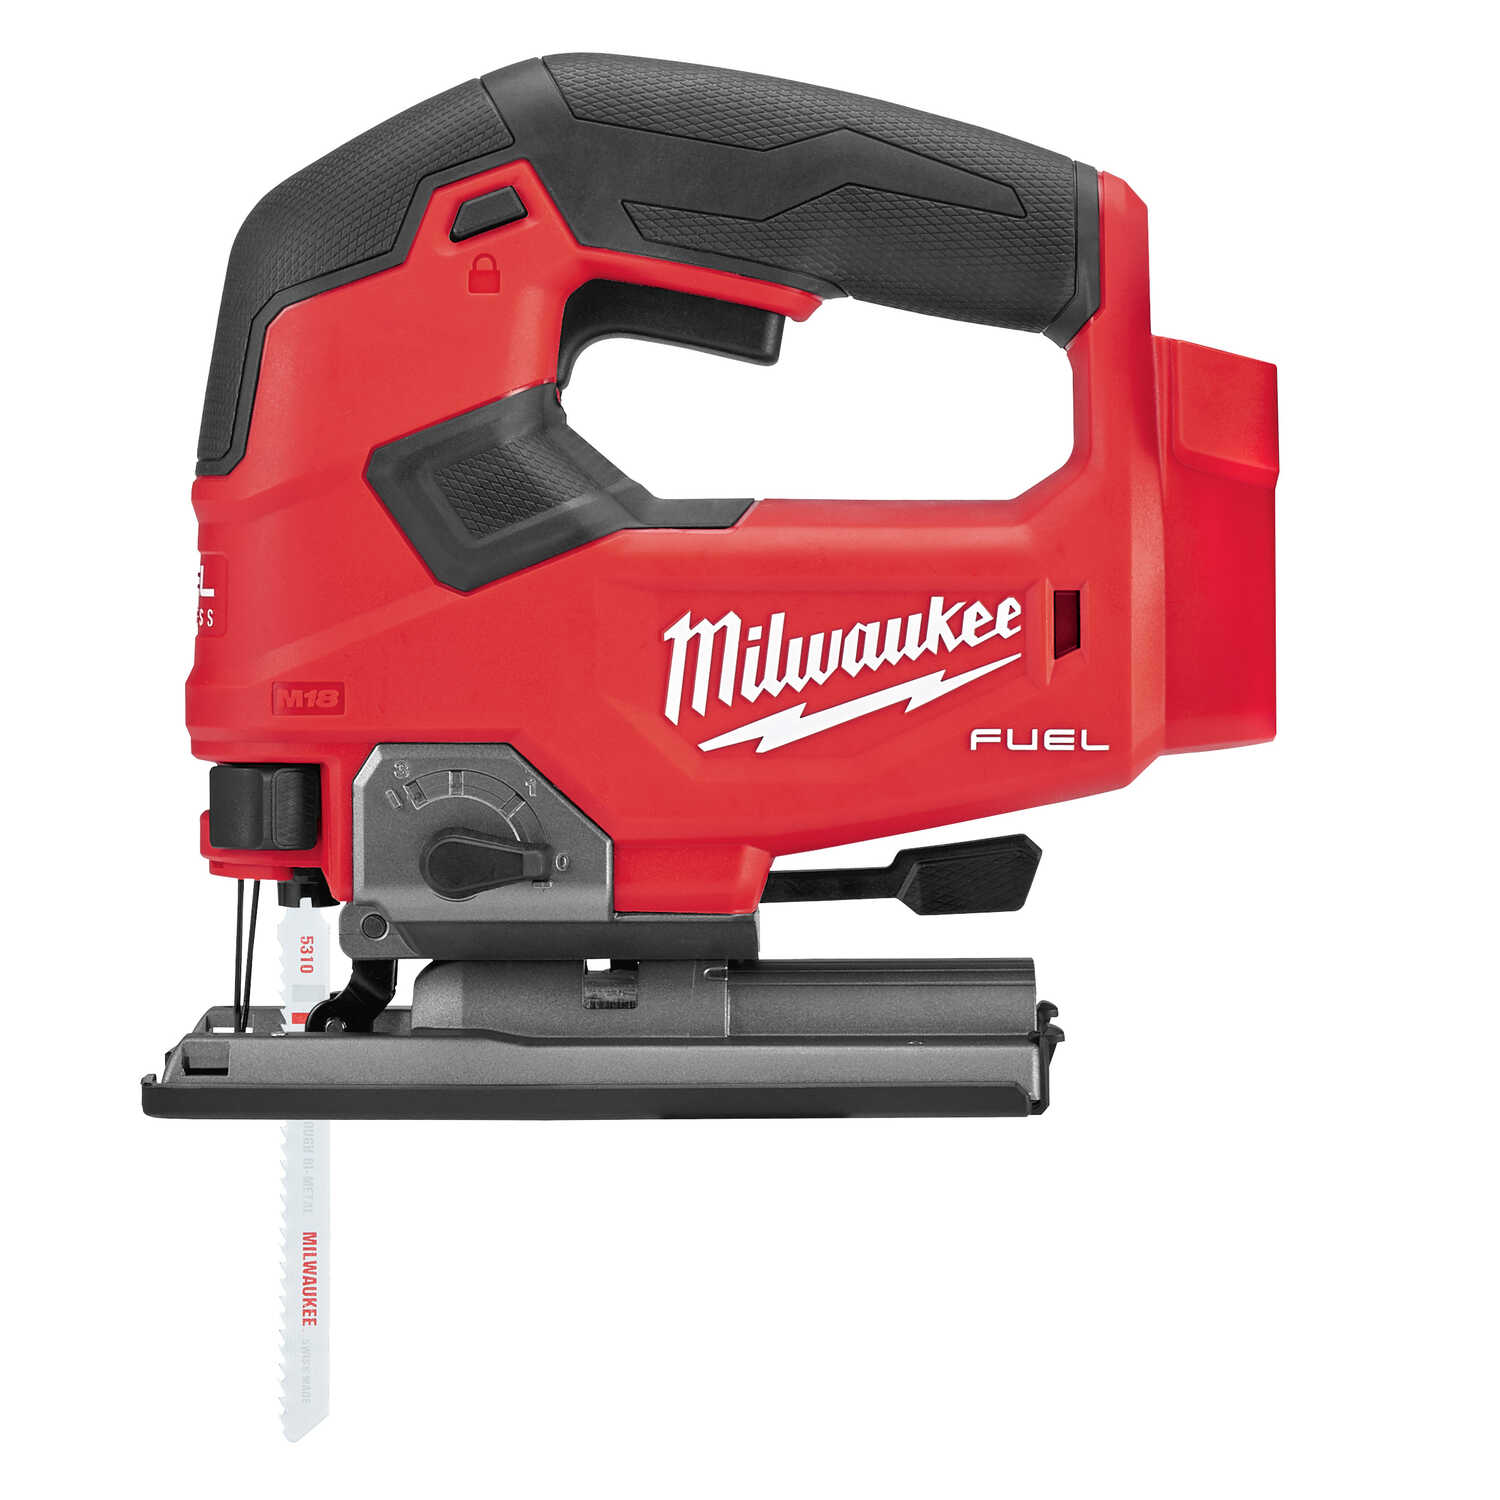 Milwaukee  M18 FUEL  3/4 in. Cordless  Keyless D-Handle  Jig Saw  18 volt 3500 spm